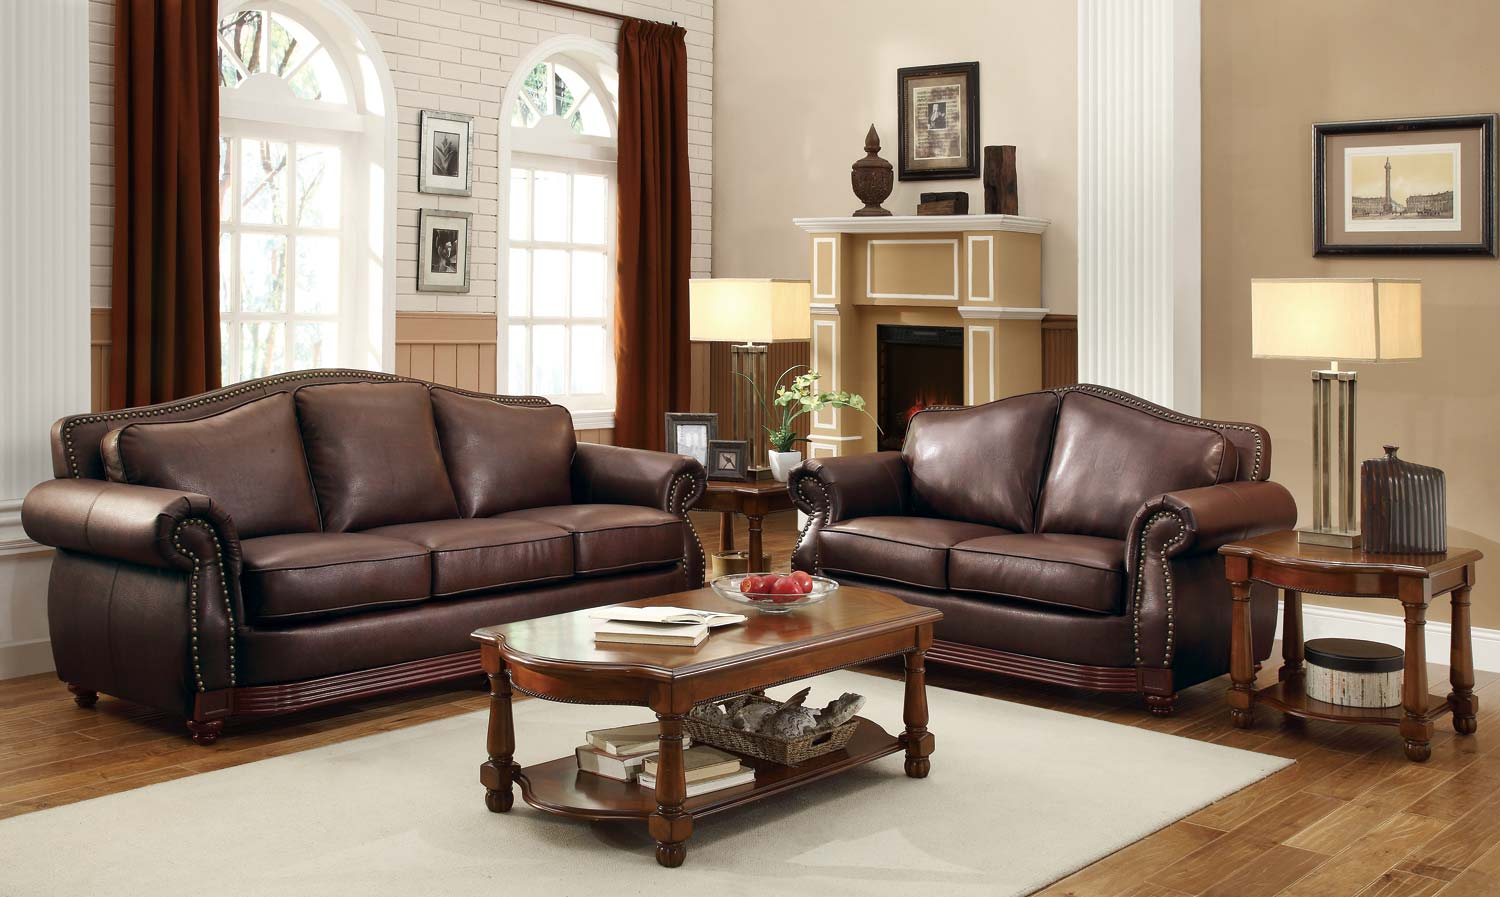 Midwood 2pc Brown Sofa & Loveseat Set Dallas TX